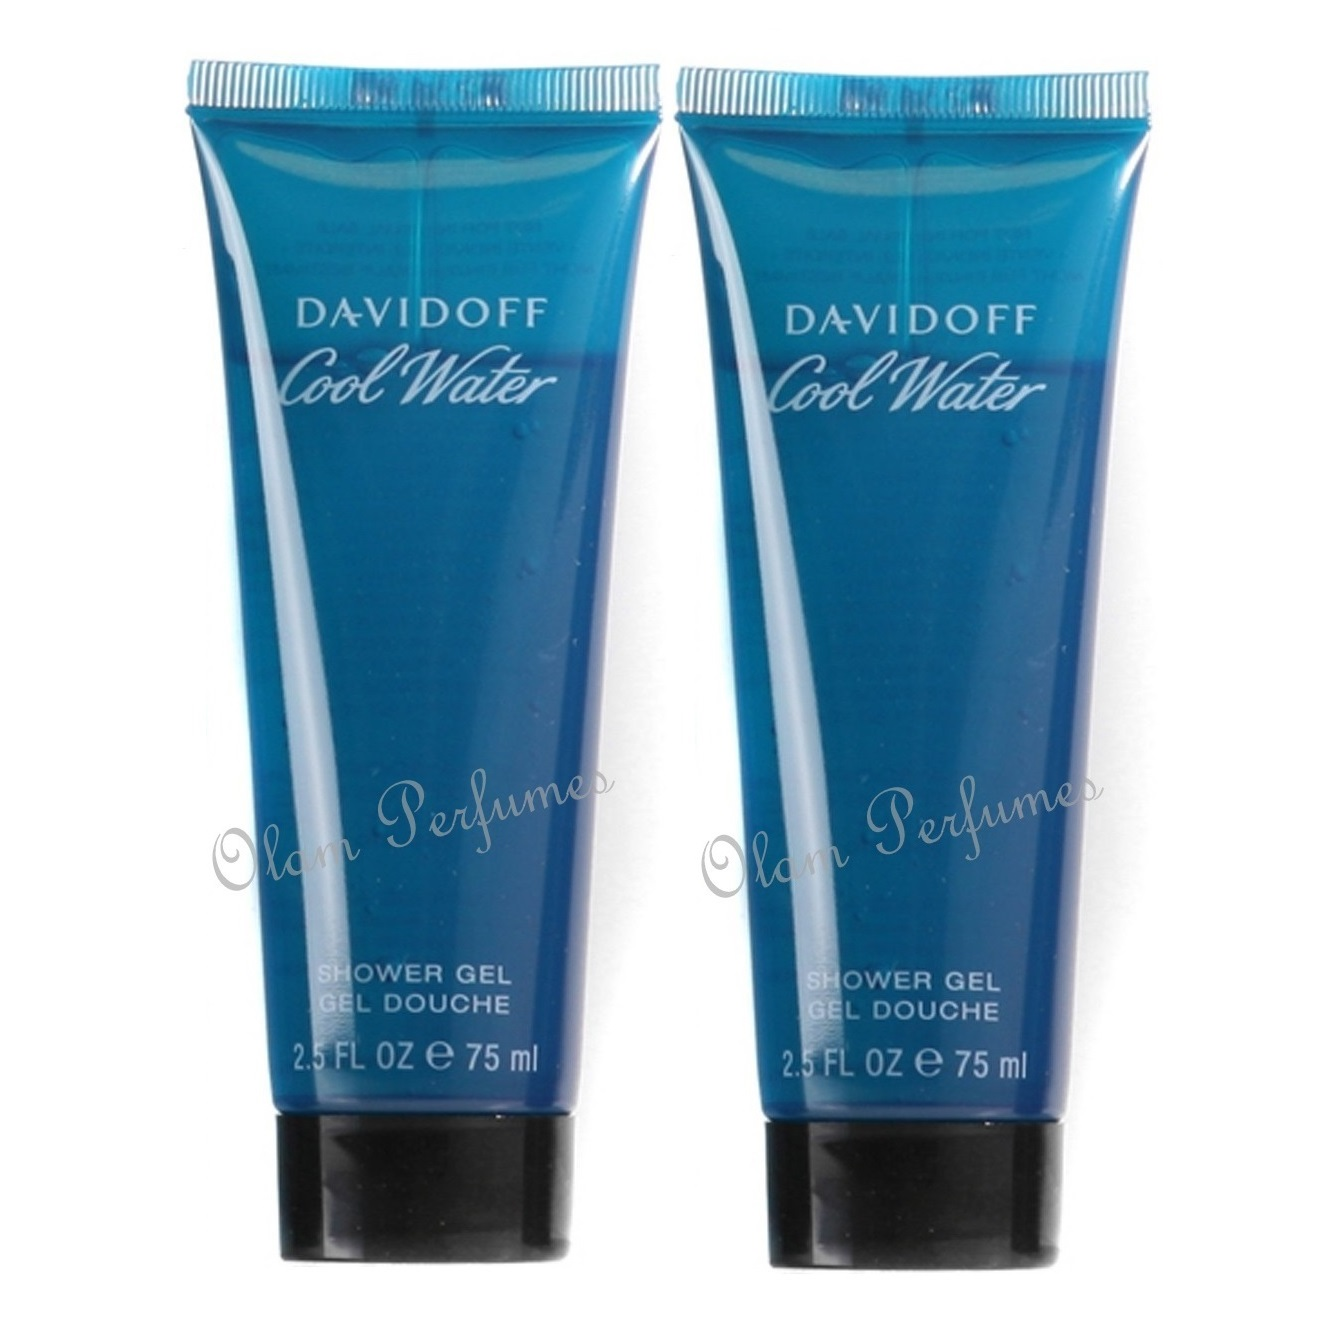 Davidoff Cool Water Bath & Shower Gel For Men Pack 5.0oz 150ml